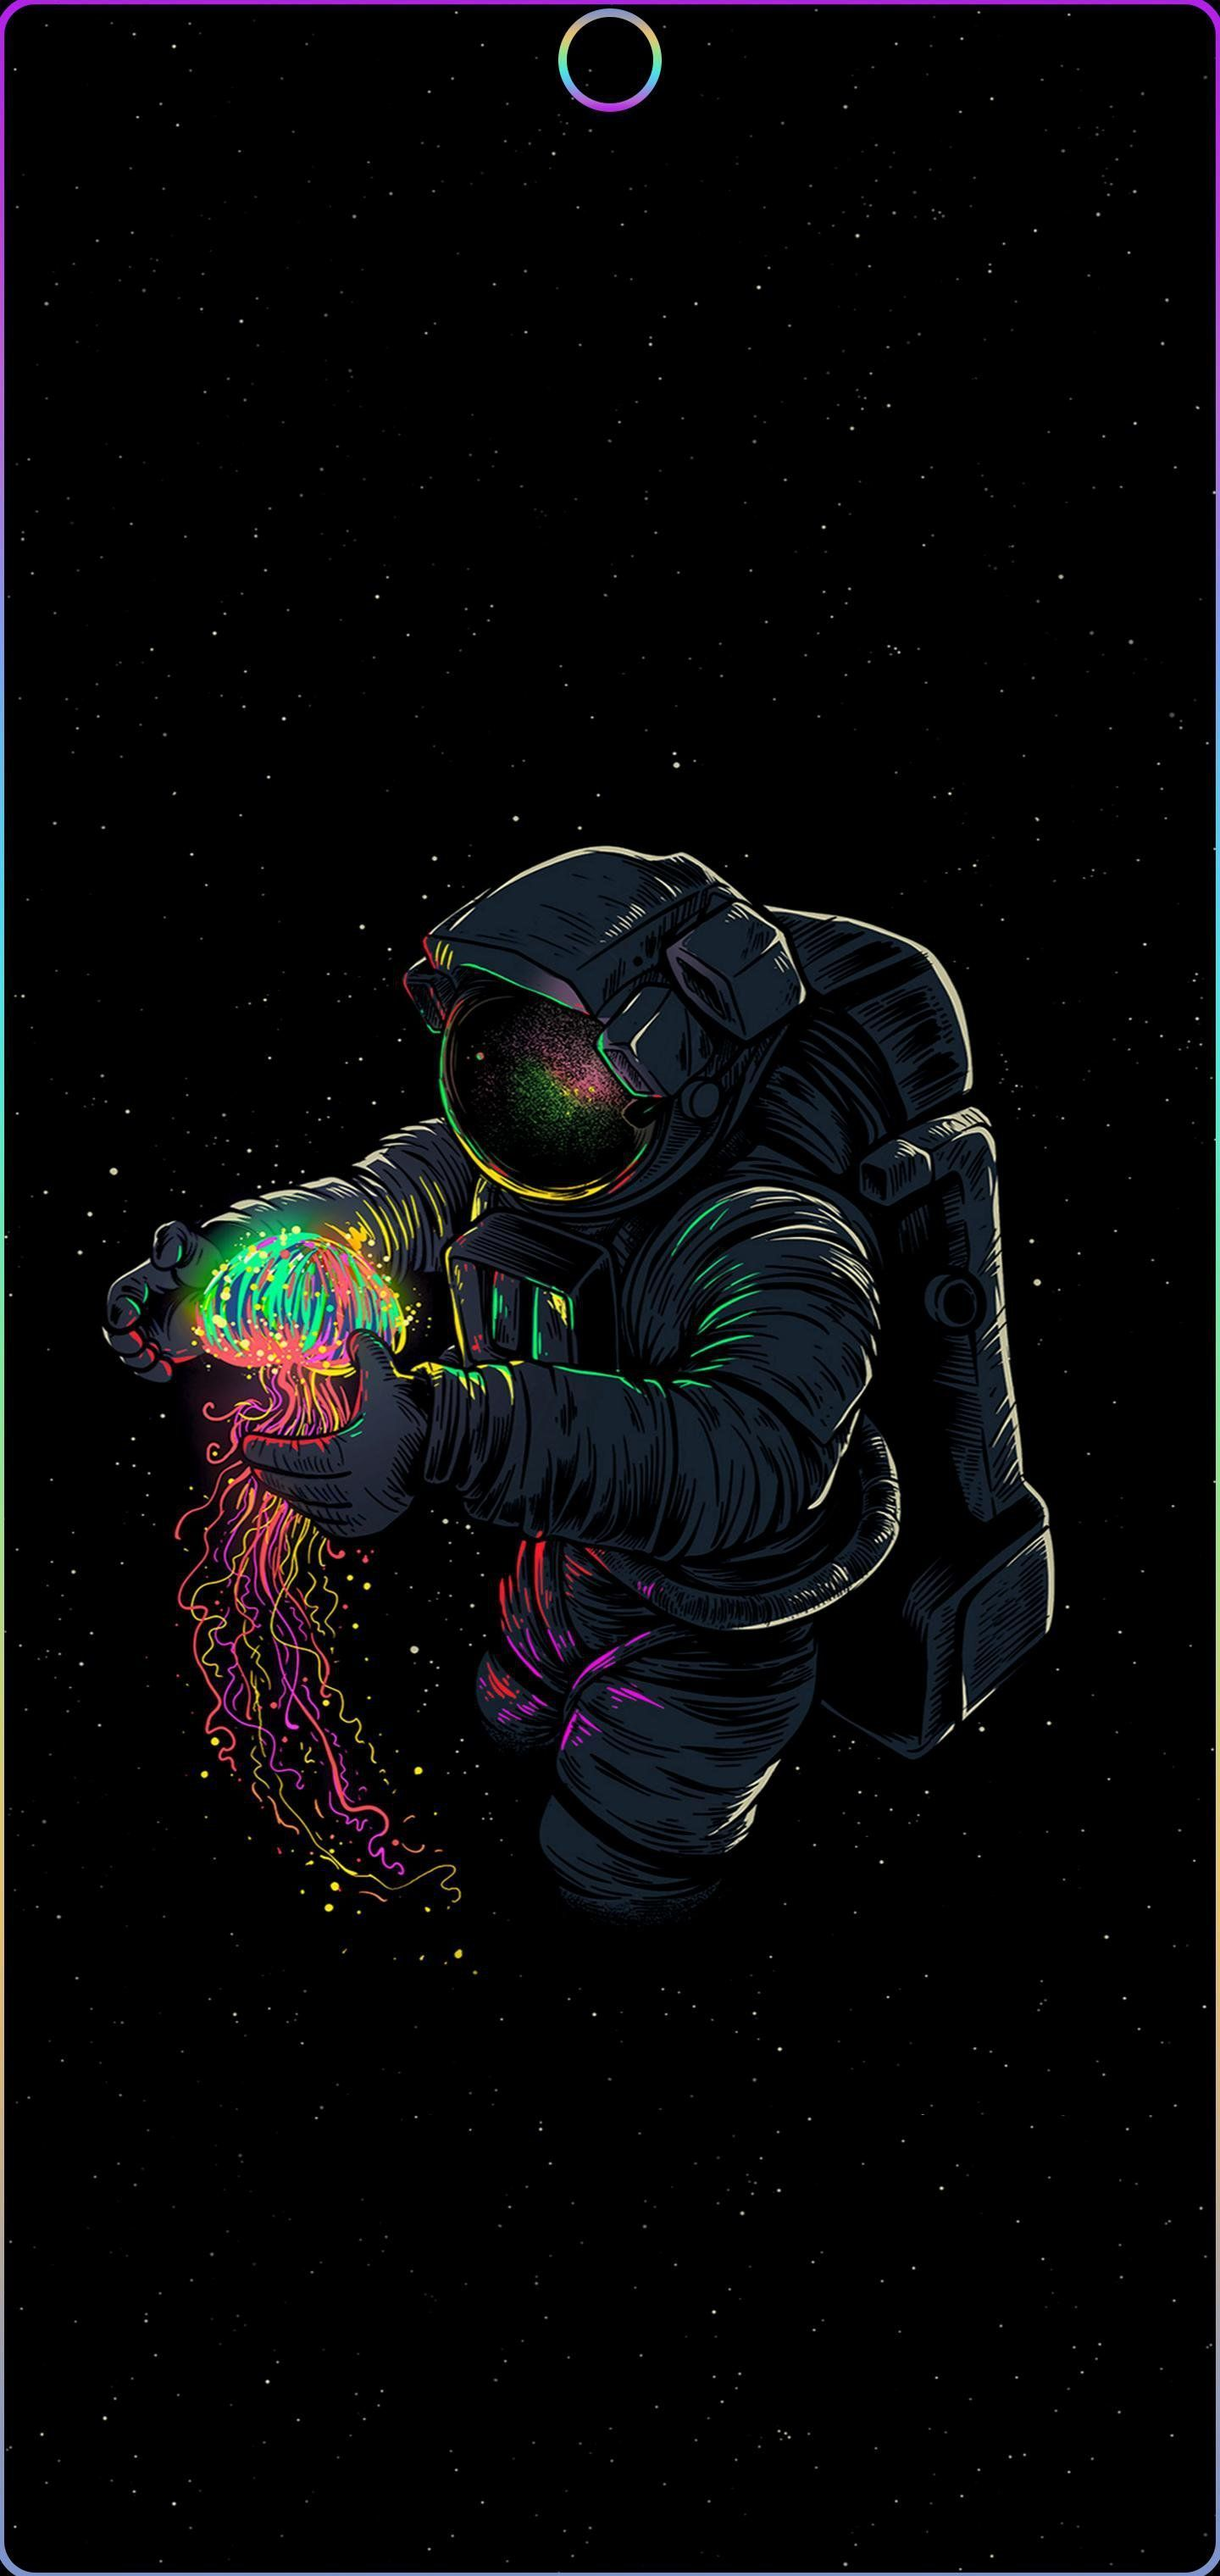 Samsung Galaxy Note 10 Plus Wallpapers Top Astronaut Wallpaper Wallpaper Space Space Phone Wallpaper